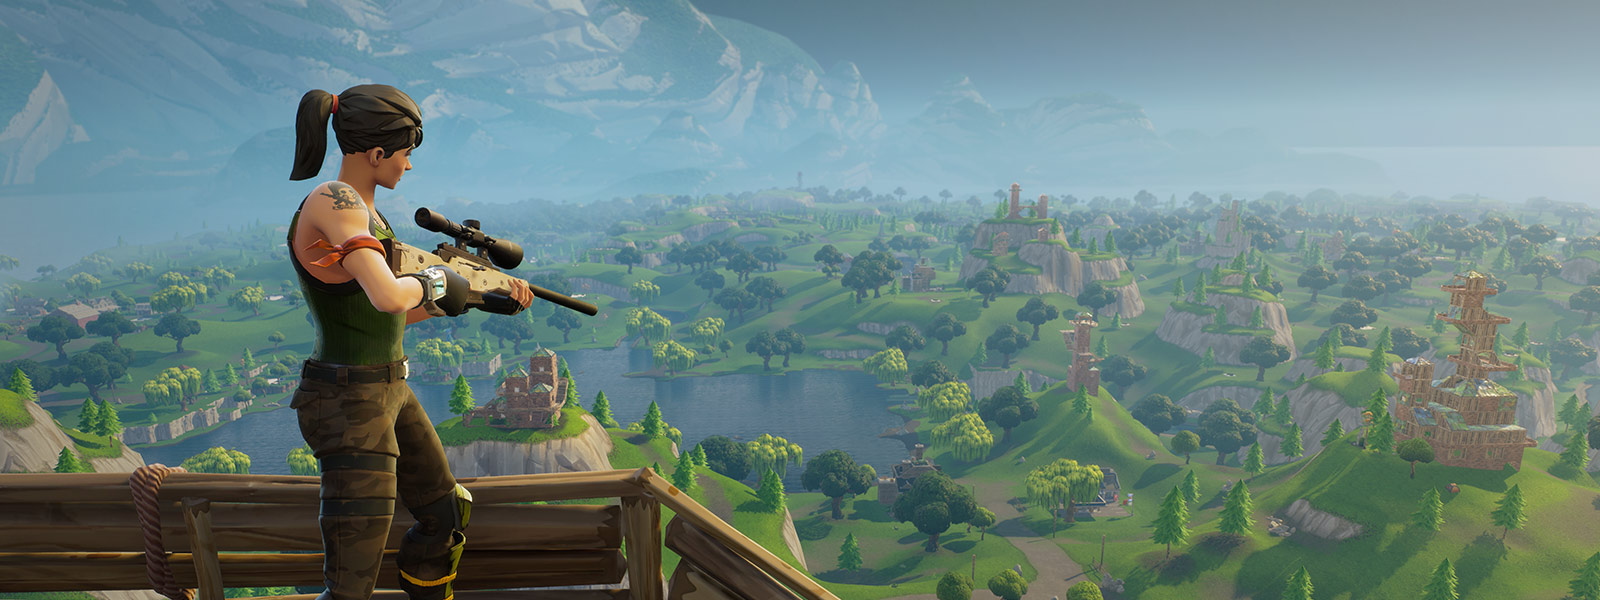 Character stands on a sniper perch holding a sniper rifle